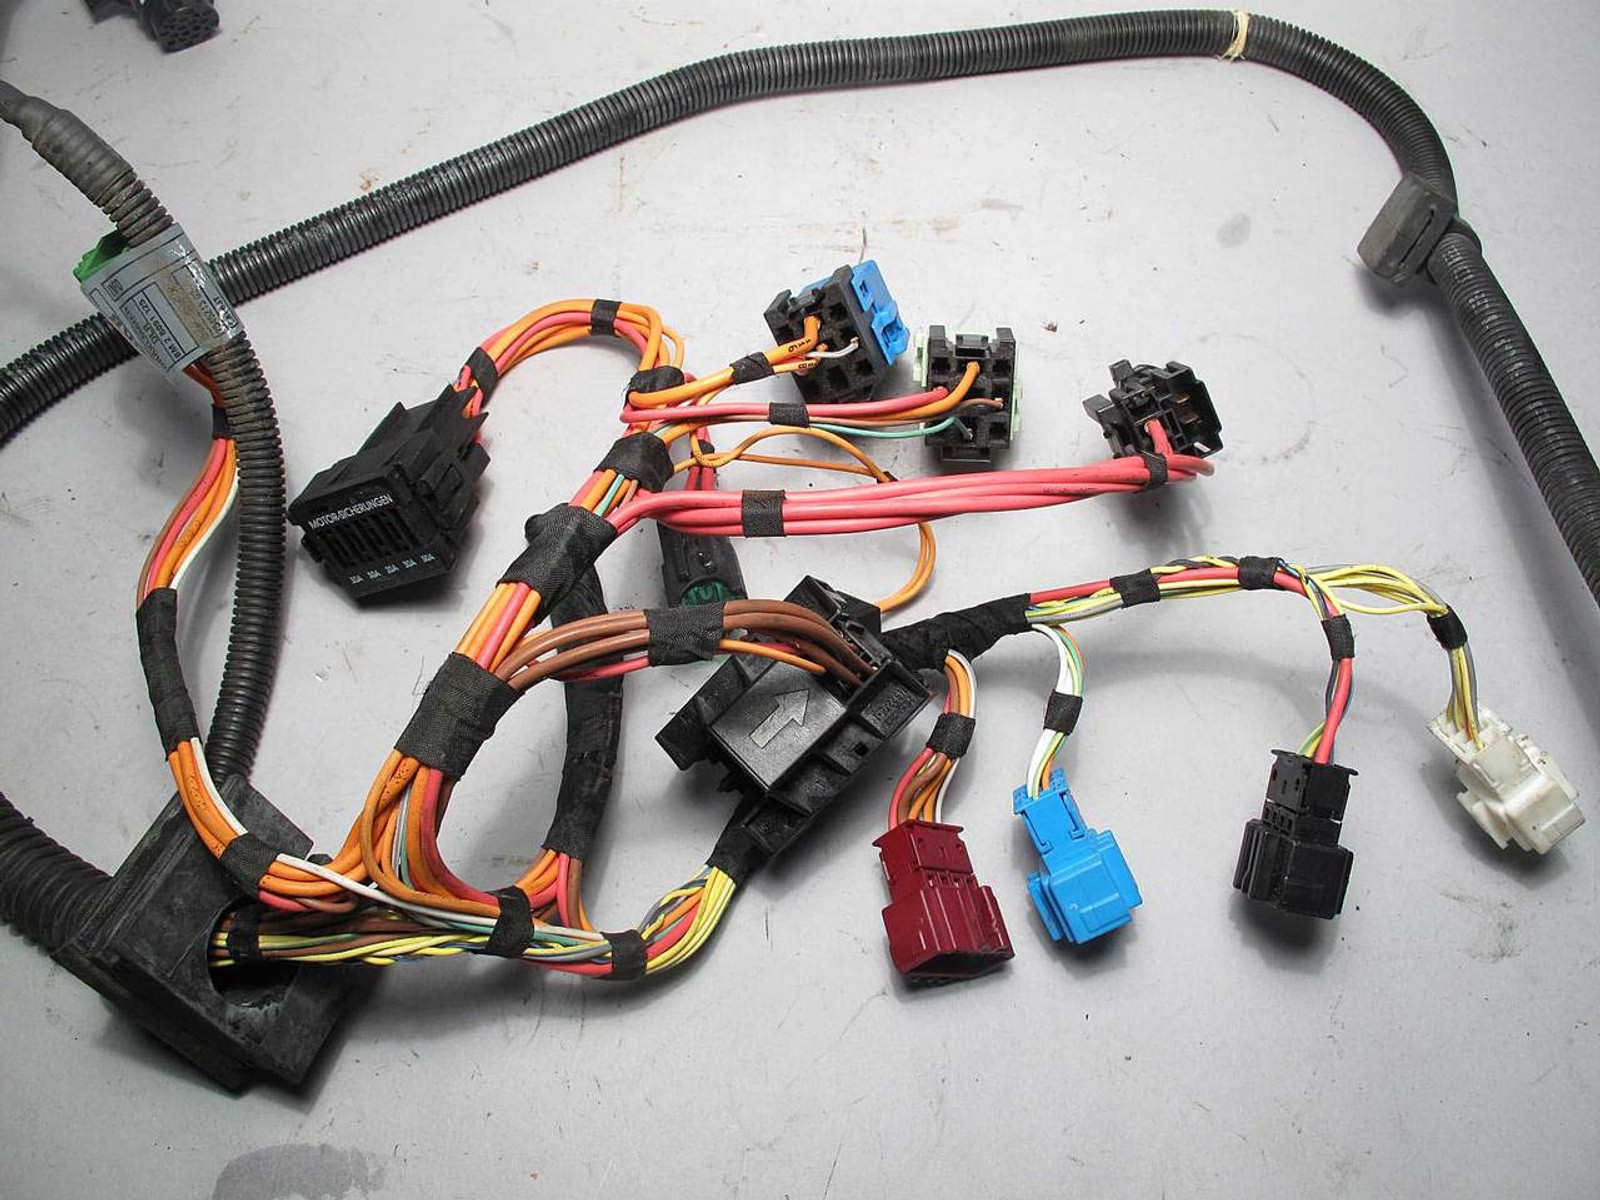 2006 bmw e90 n52 325 330 automatic transmission wiring harness complete used oem [ 1280 x 960 Pixel ]